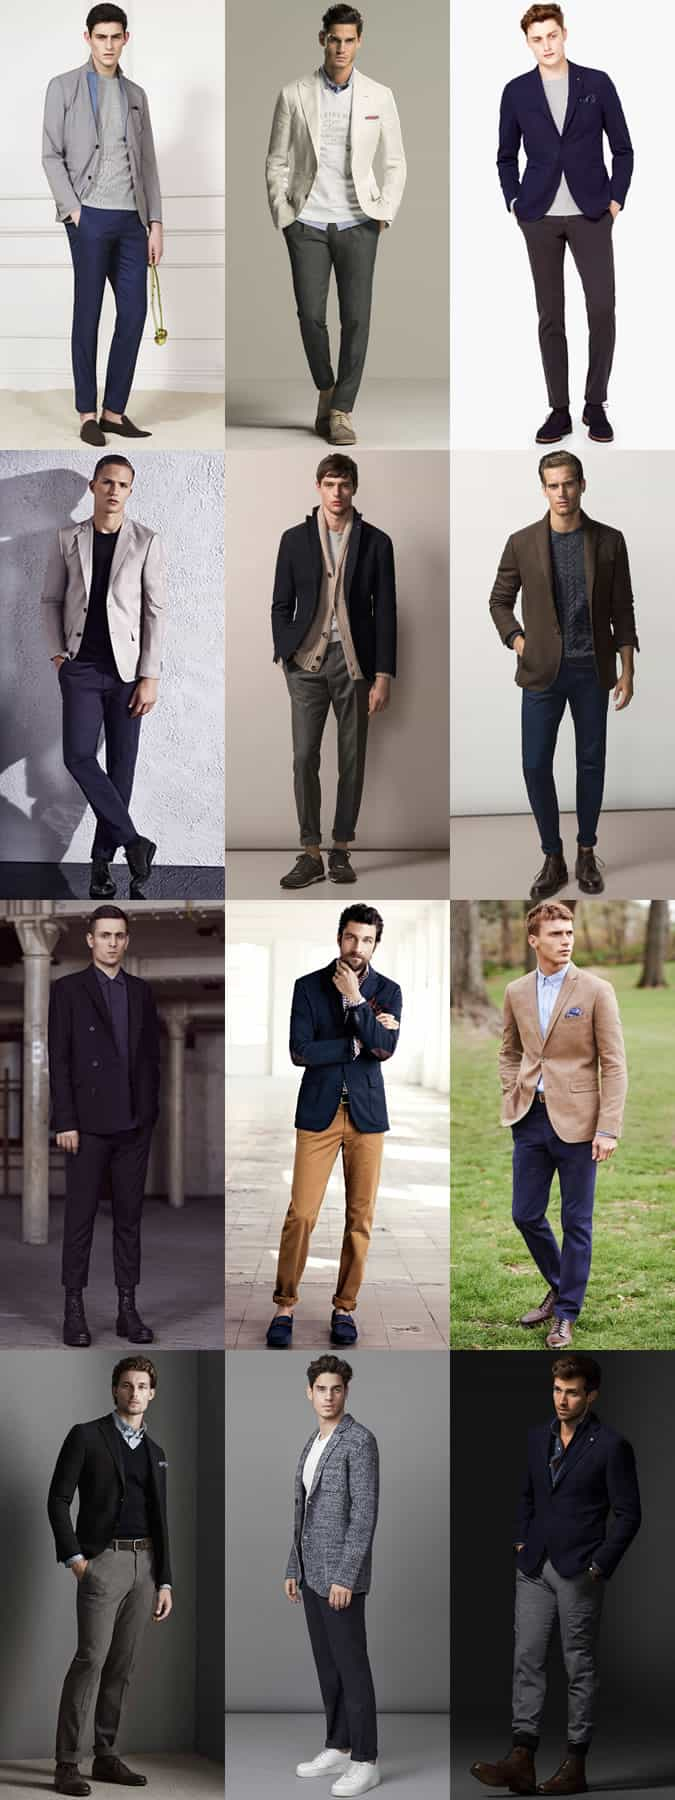 Men's Unstructured Tailoring Outfit Inspiration Lookbook